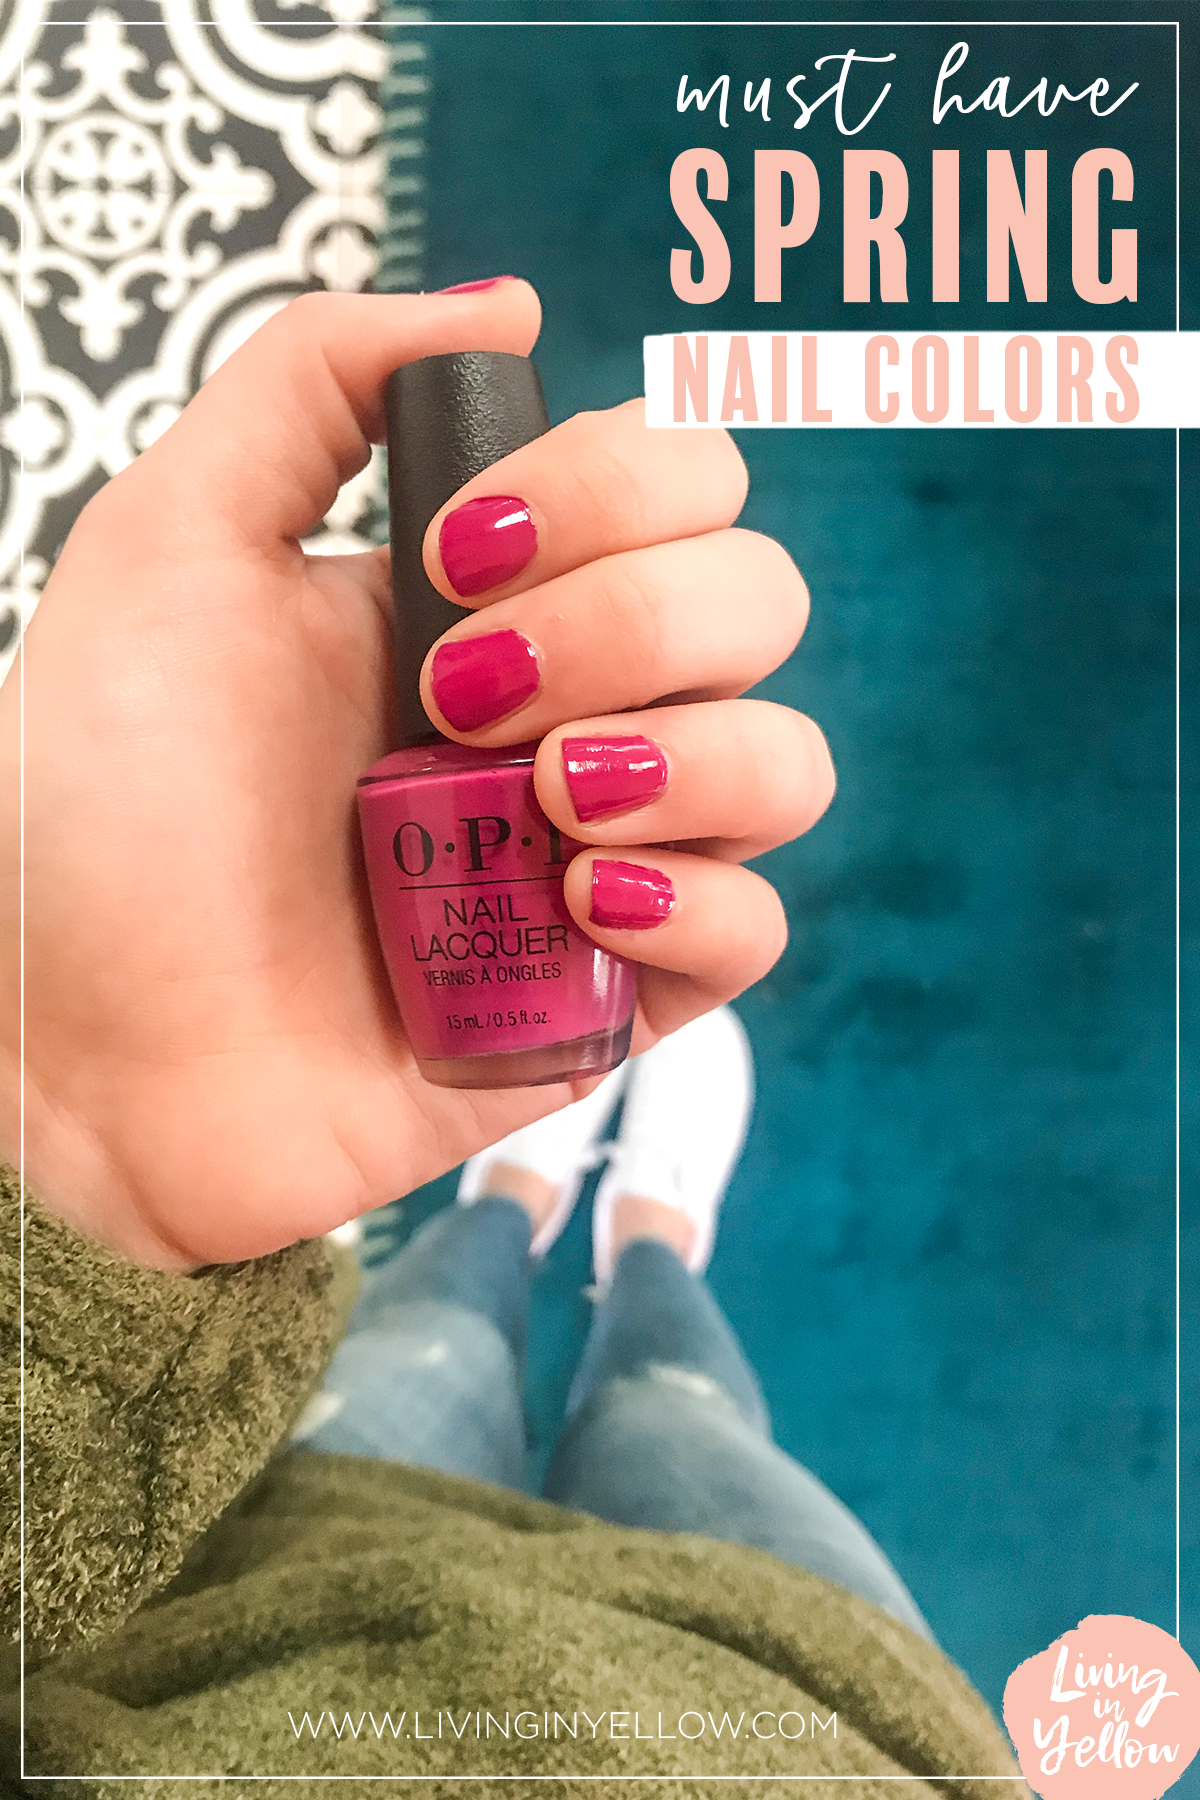 The-best-spring-nail-colors. Spring-and-summer nail colors / Nail goals. Trending-nails-for-spring. Bold-spring-colors. Nail-colors-to-copy!